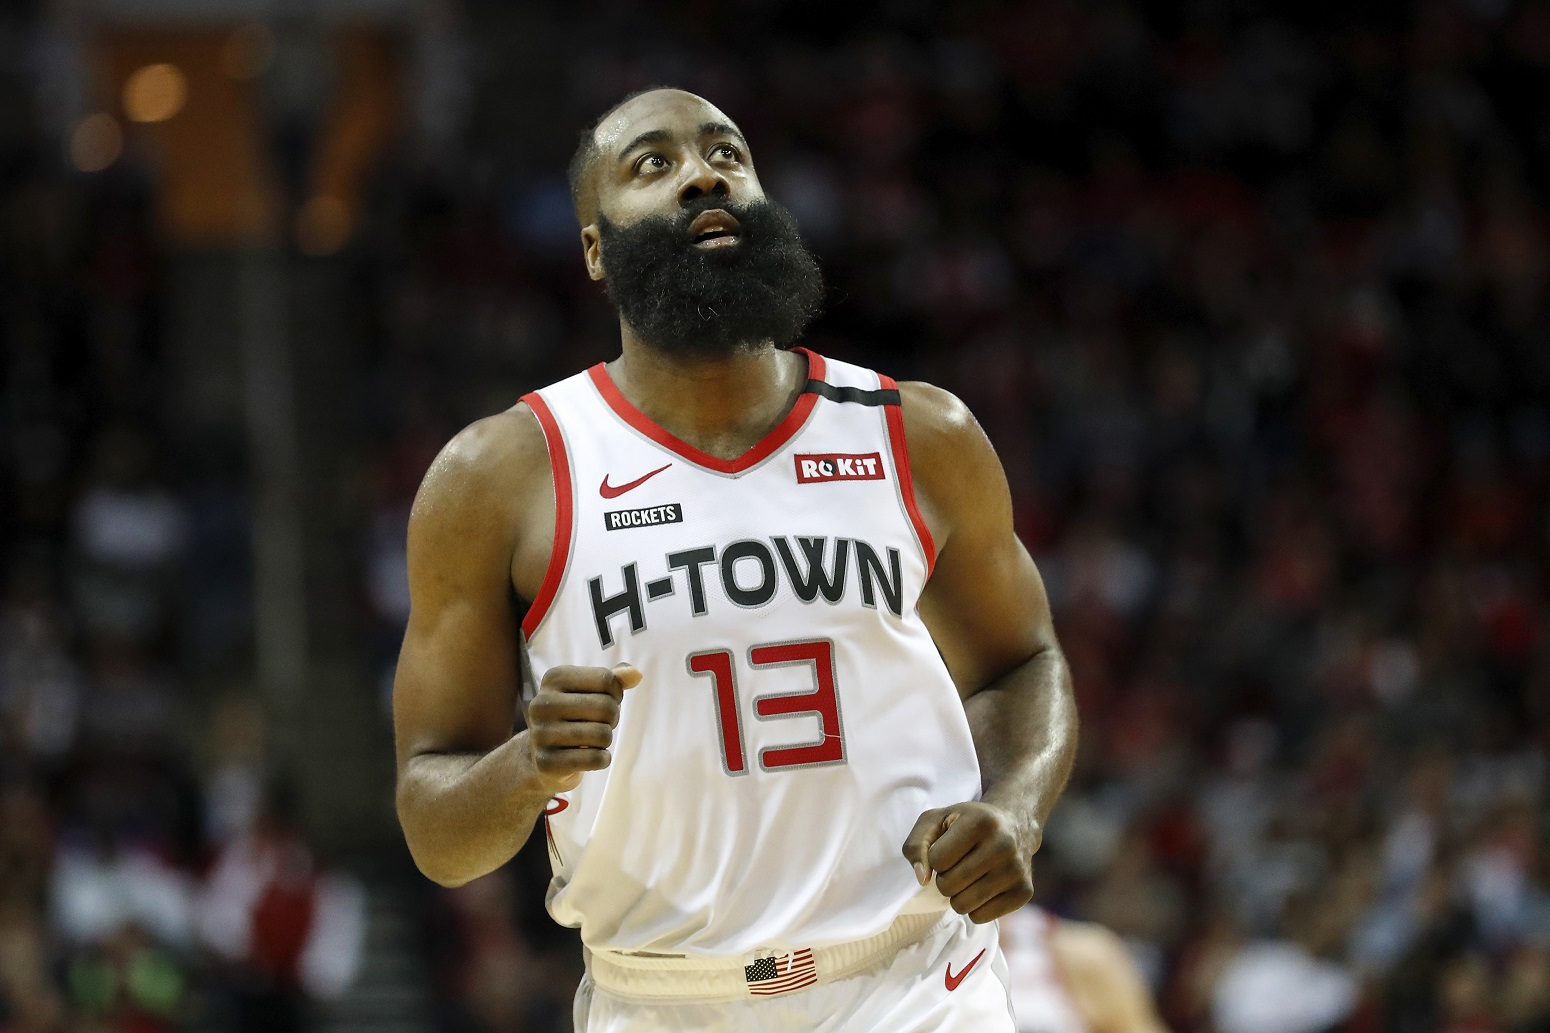 James Harden wants to play for two teams trade rumors